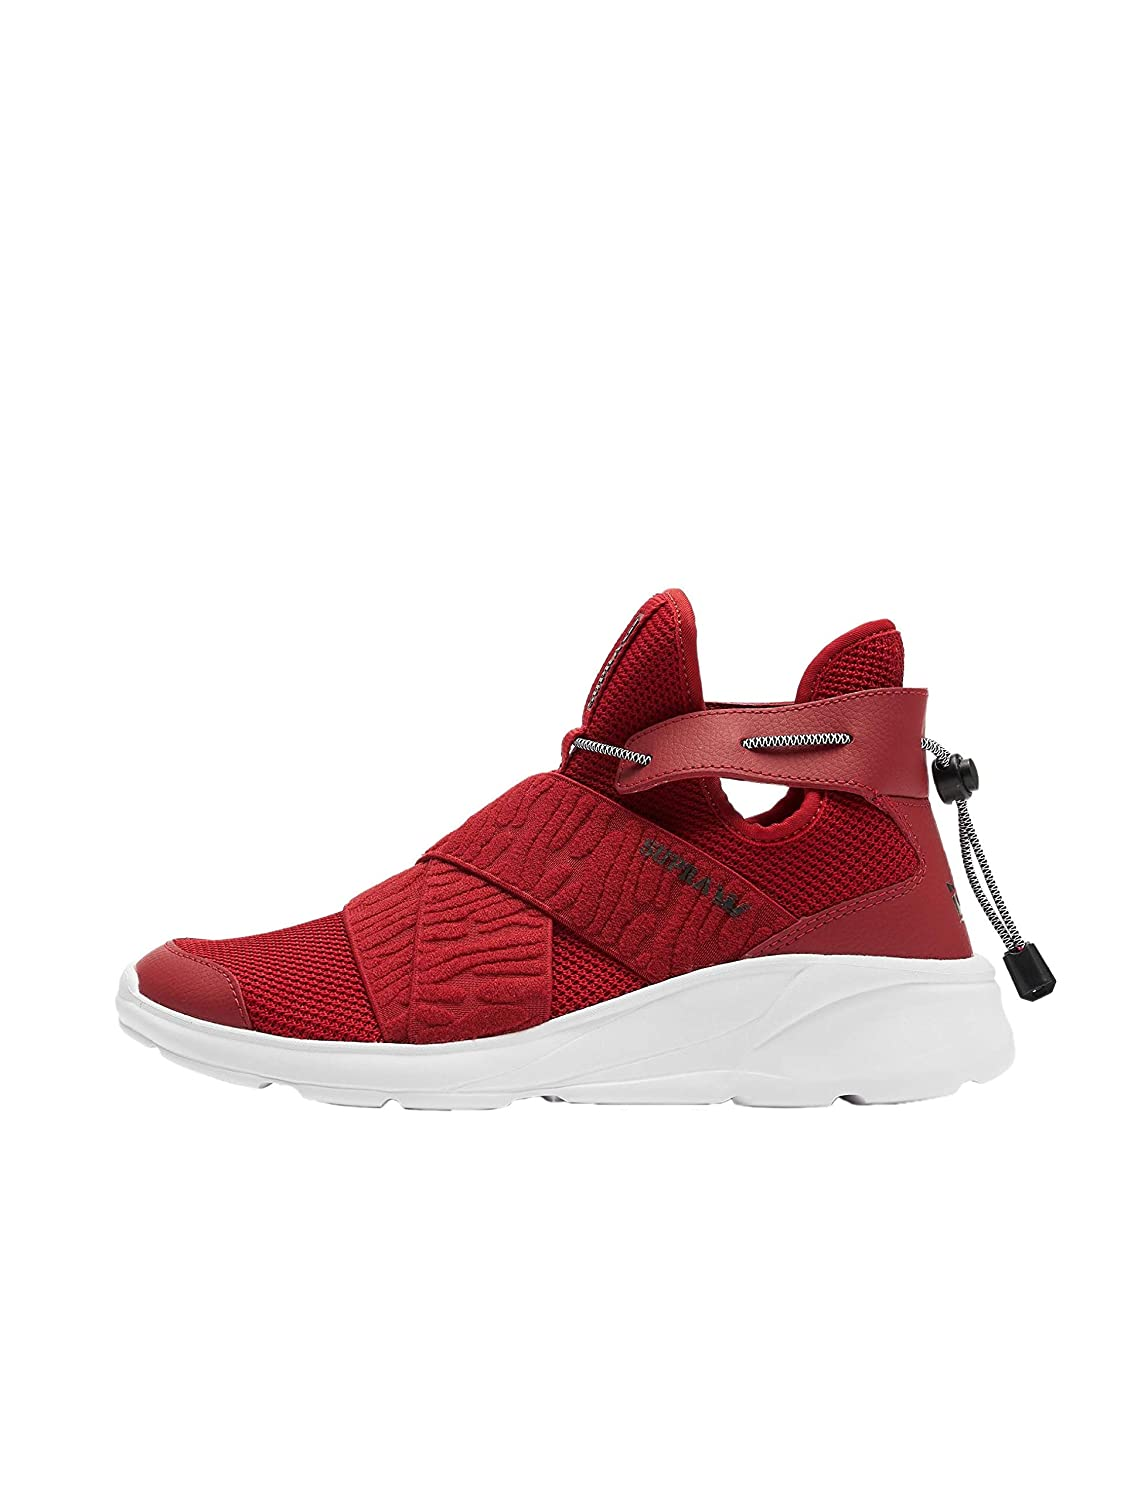 Supra Women's Anevay Shoes